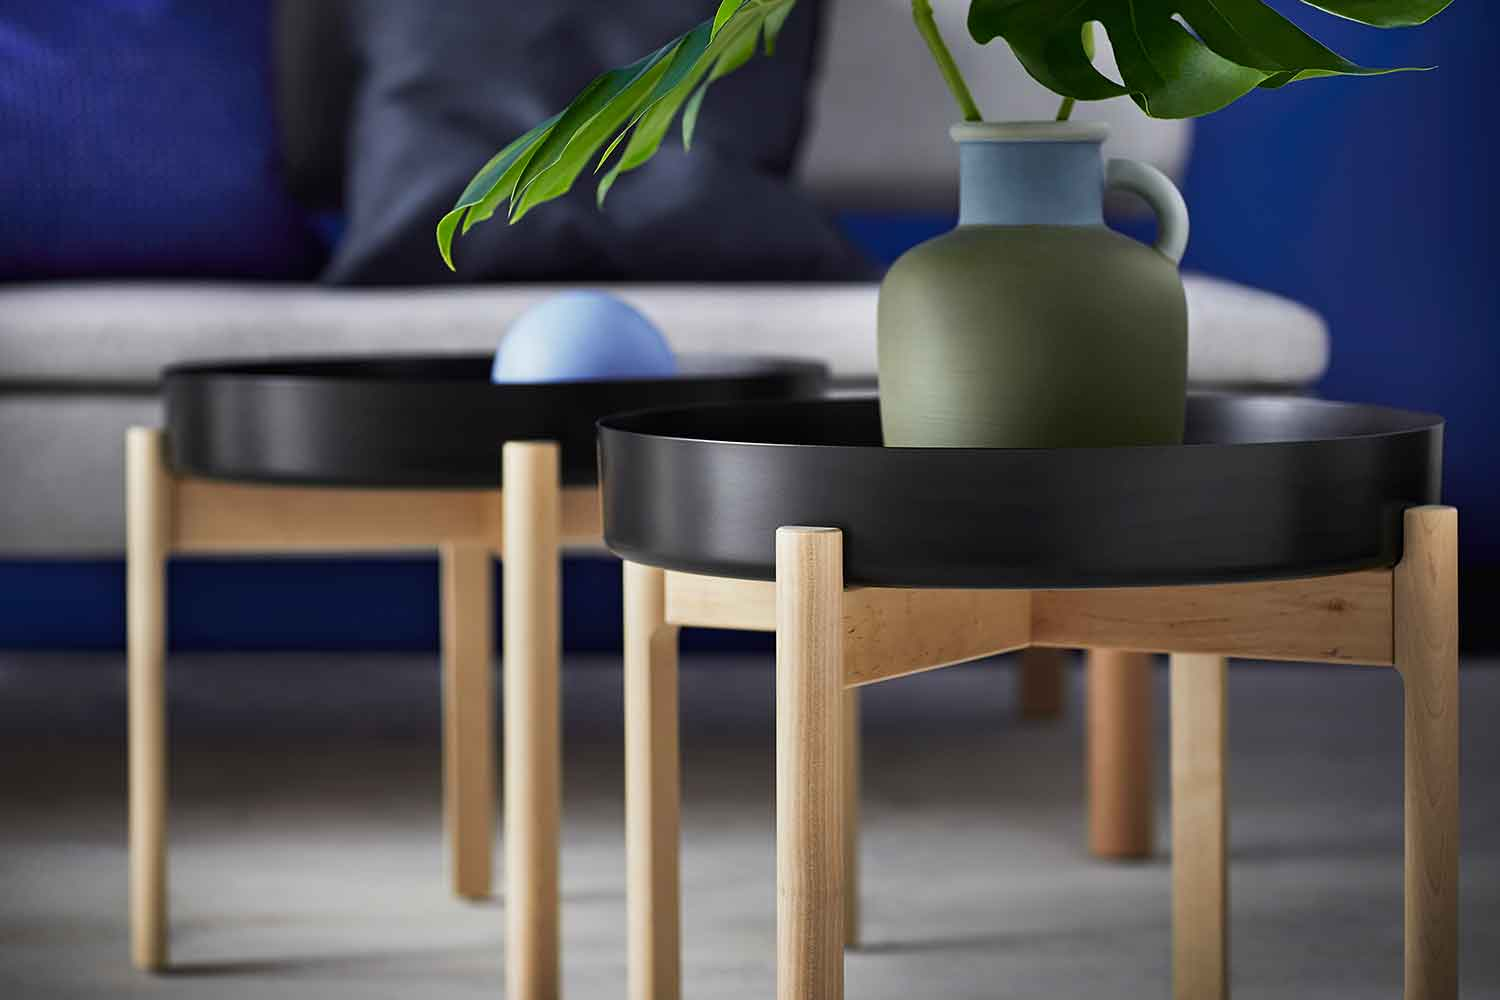 10 Ikea Ypperlig Products You Need To Snap Up ASAP